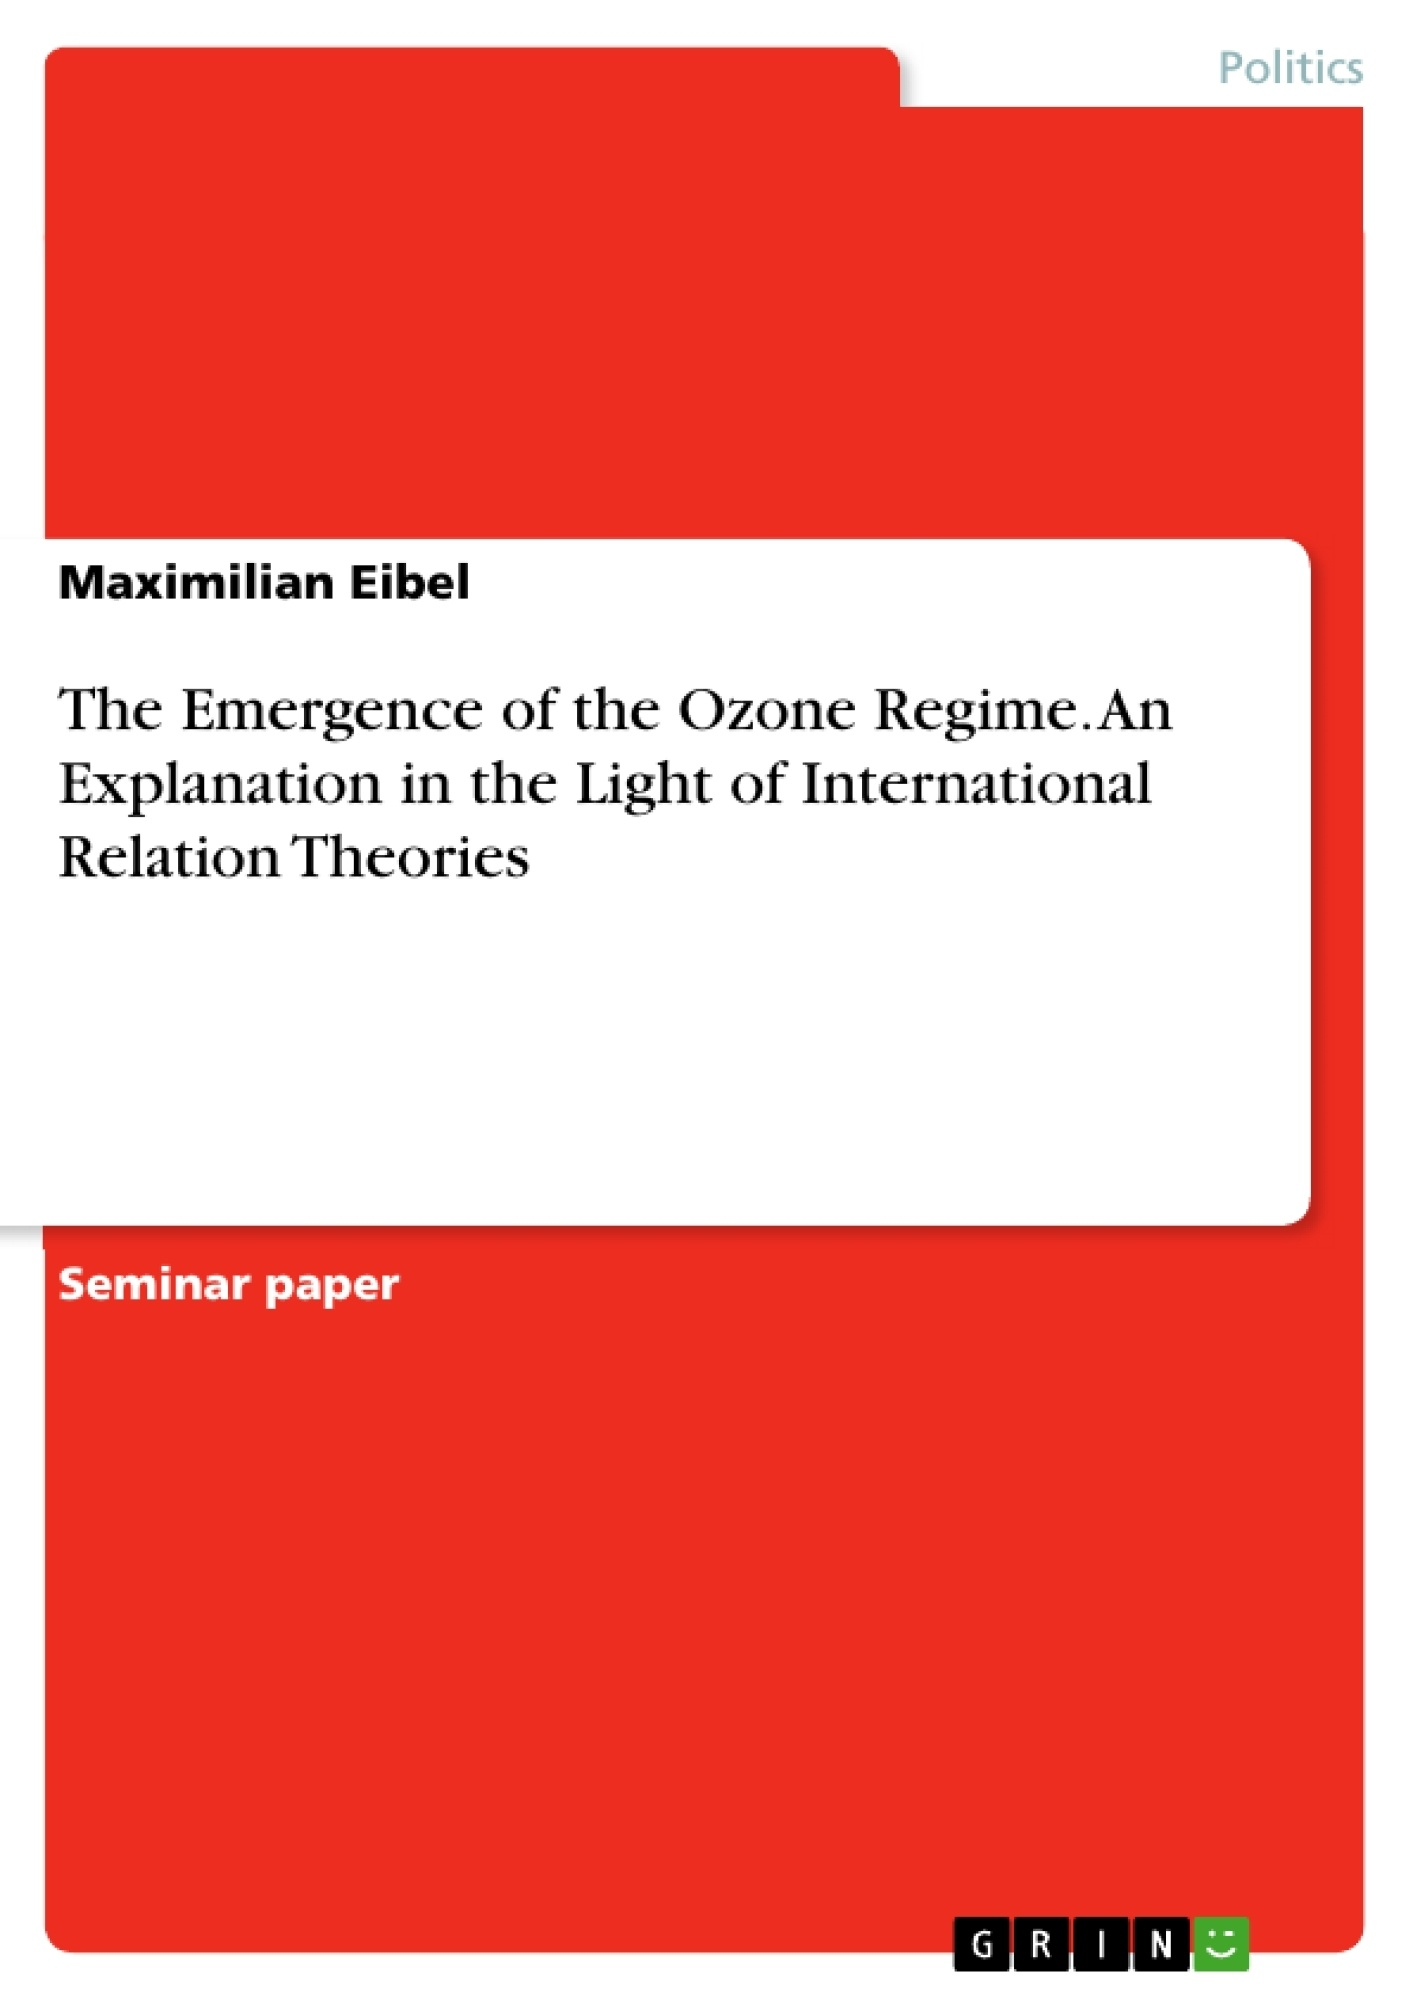 Title: The Emergence of the Ozone Regime. An Explanation in the Light of International Relation Theories